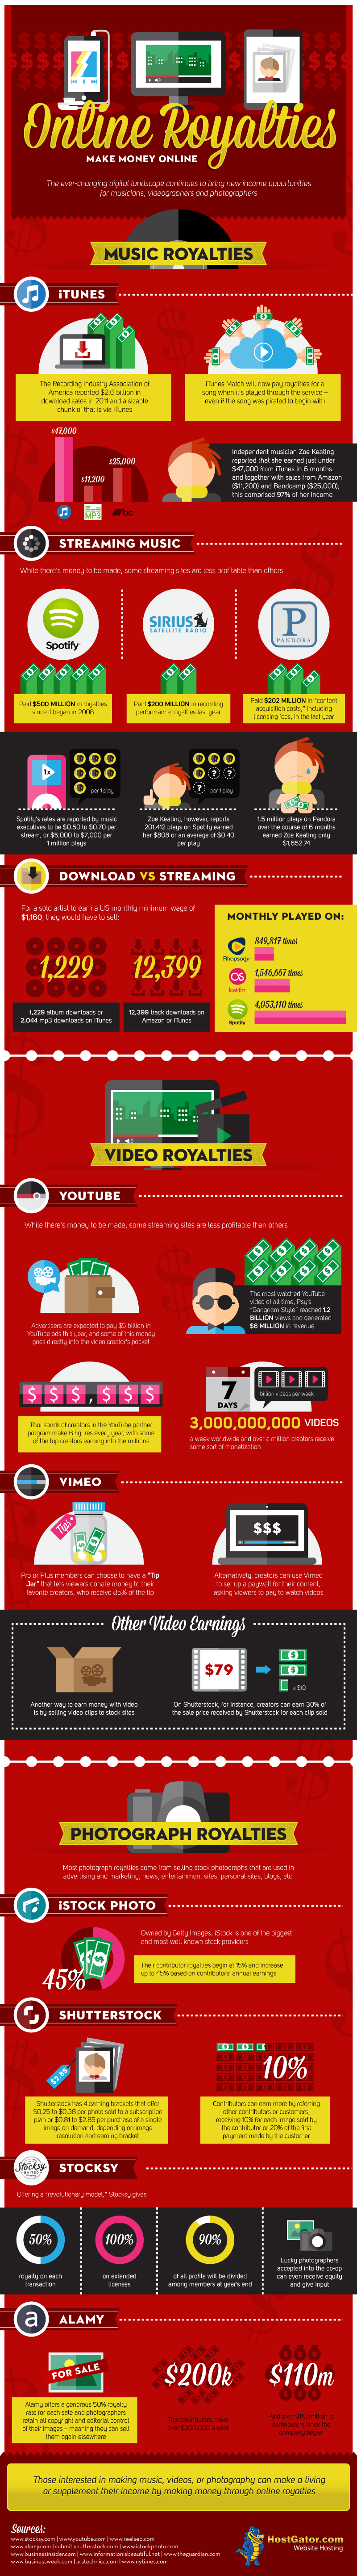 Online Royalties Make Money Online Infographic